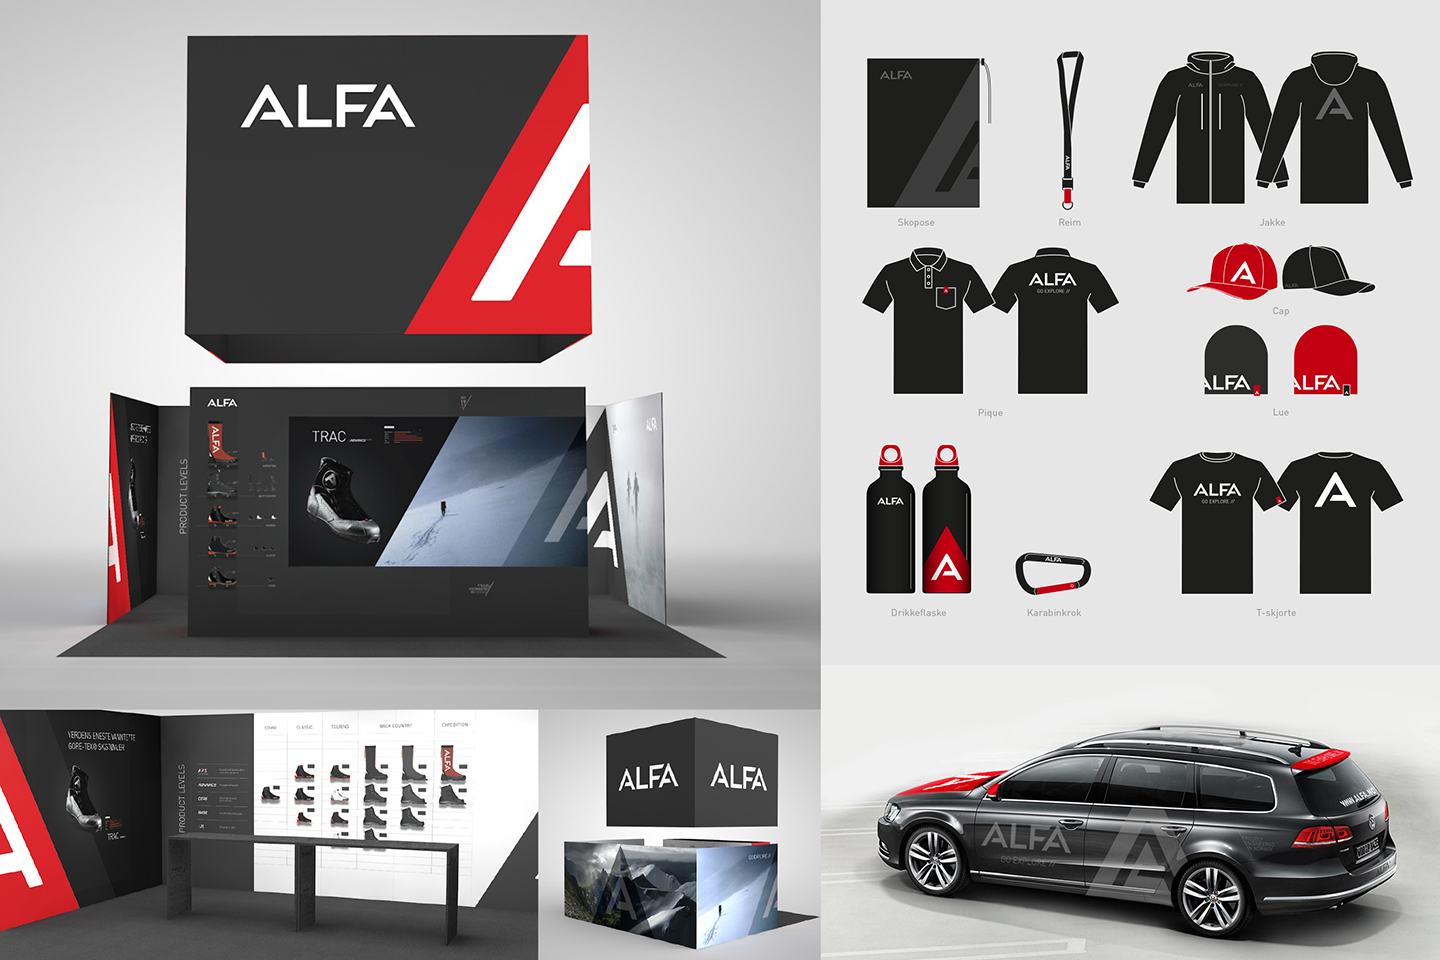 Alfa profile on stand, car and clothes.